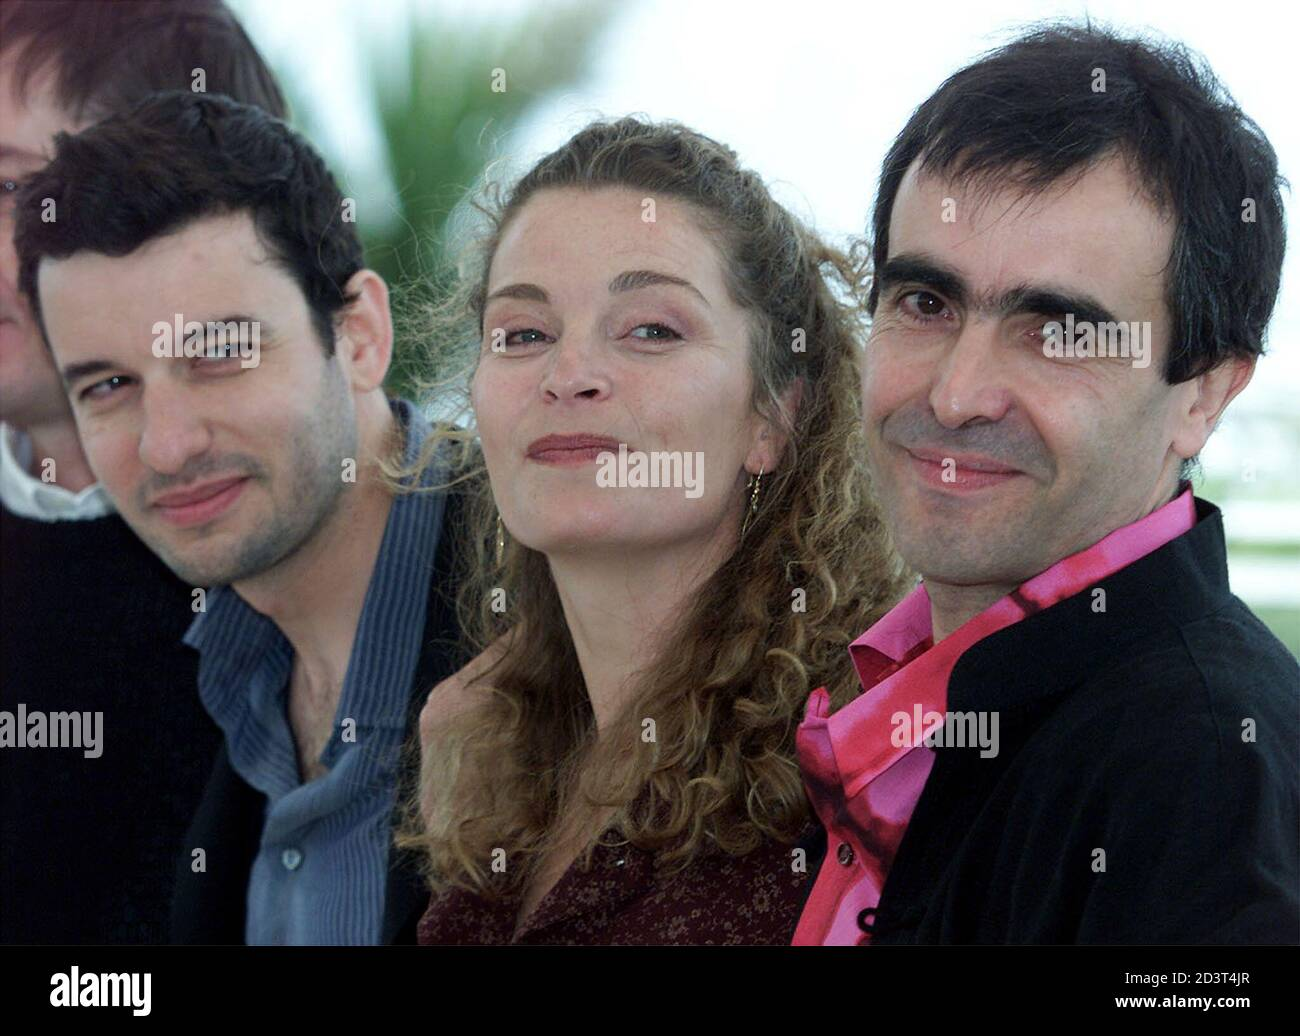 Actress Isabelle Renauld C Stands Between French Director Francois Dupeyron R And Actor Eric Caravaca L During A Photo Call For Their Film